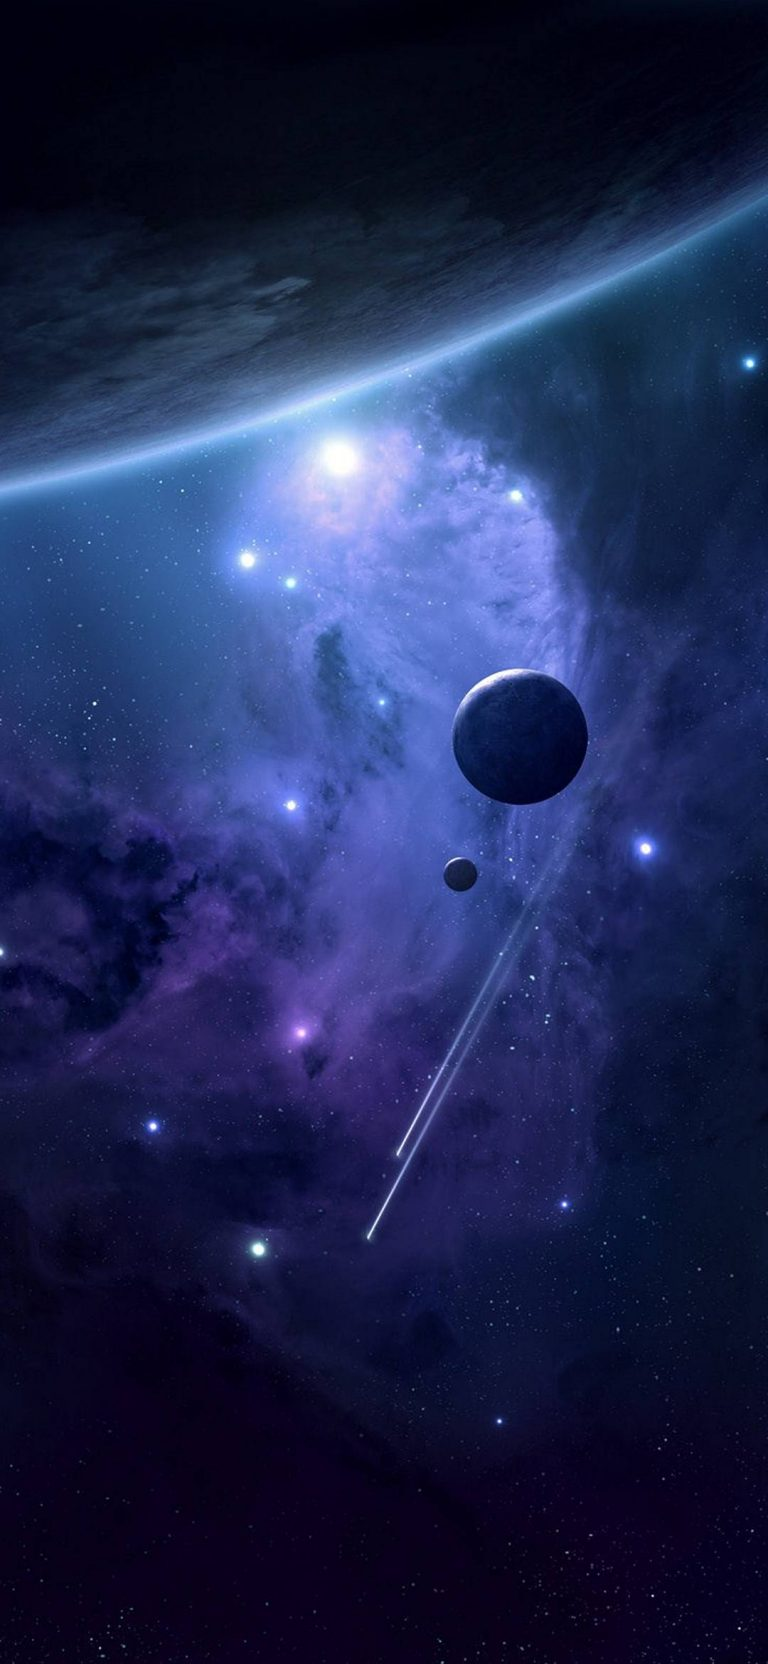 Space Planets Satellites 1080x2340 768x1664